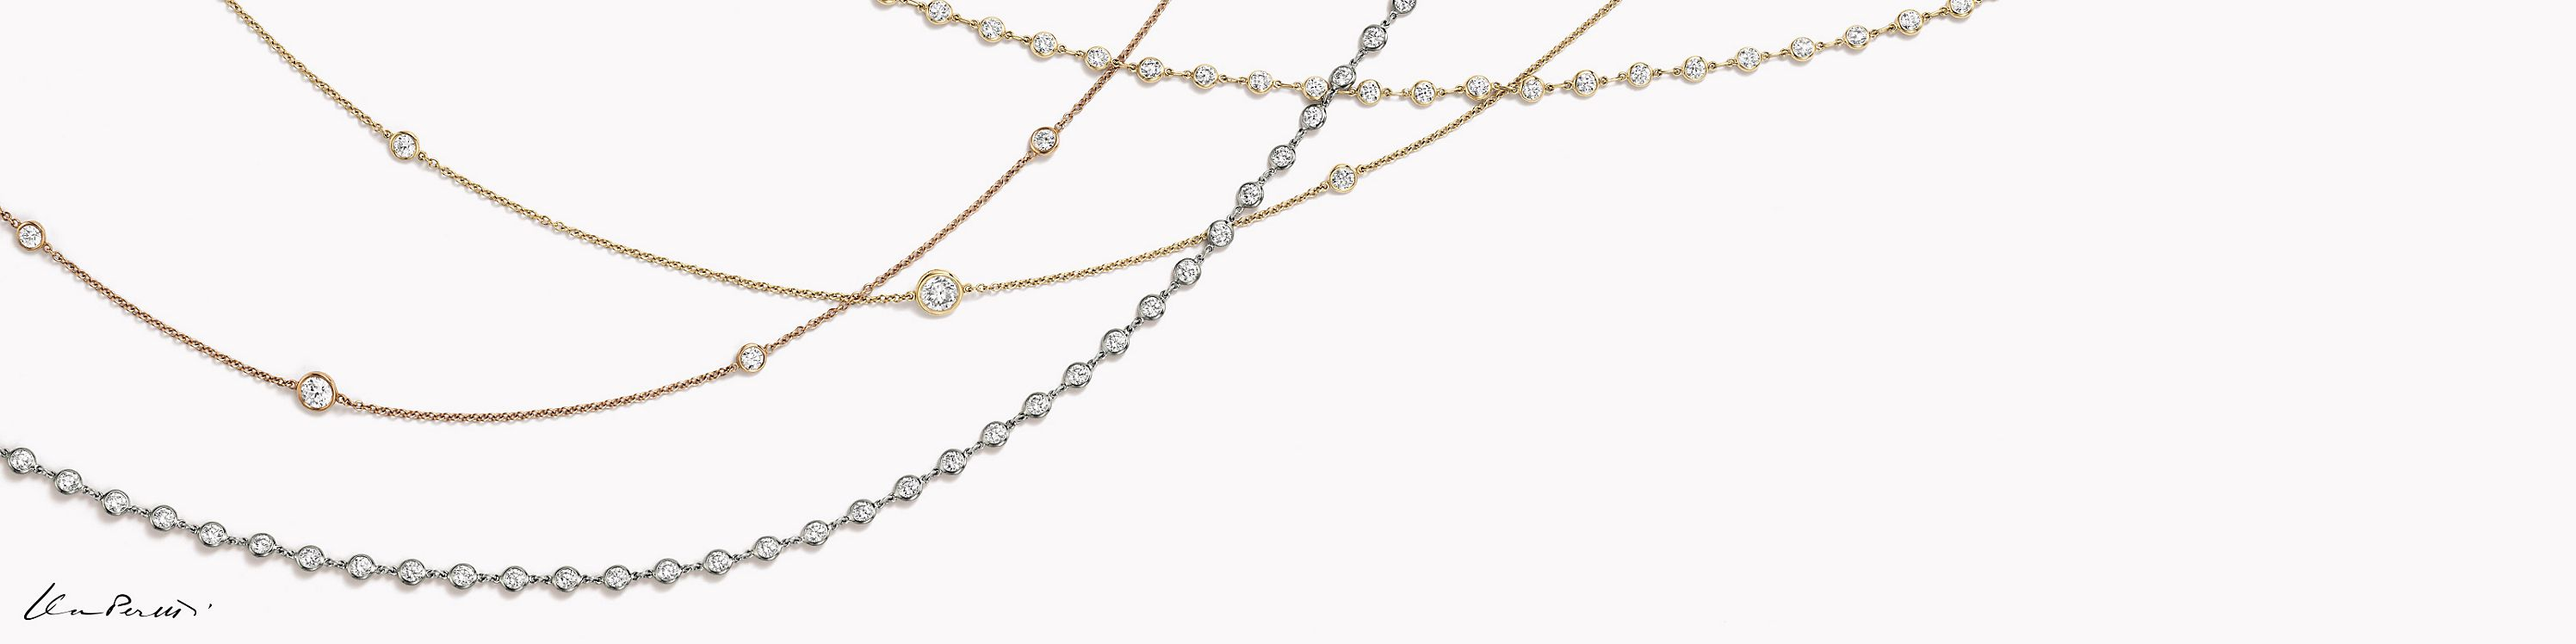 Shop Elsa Peretti® Diamonds by the Yard®